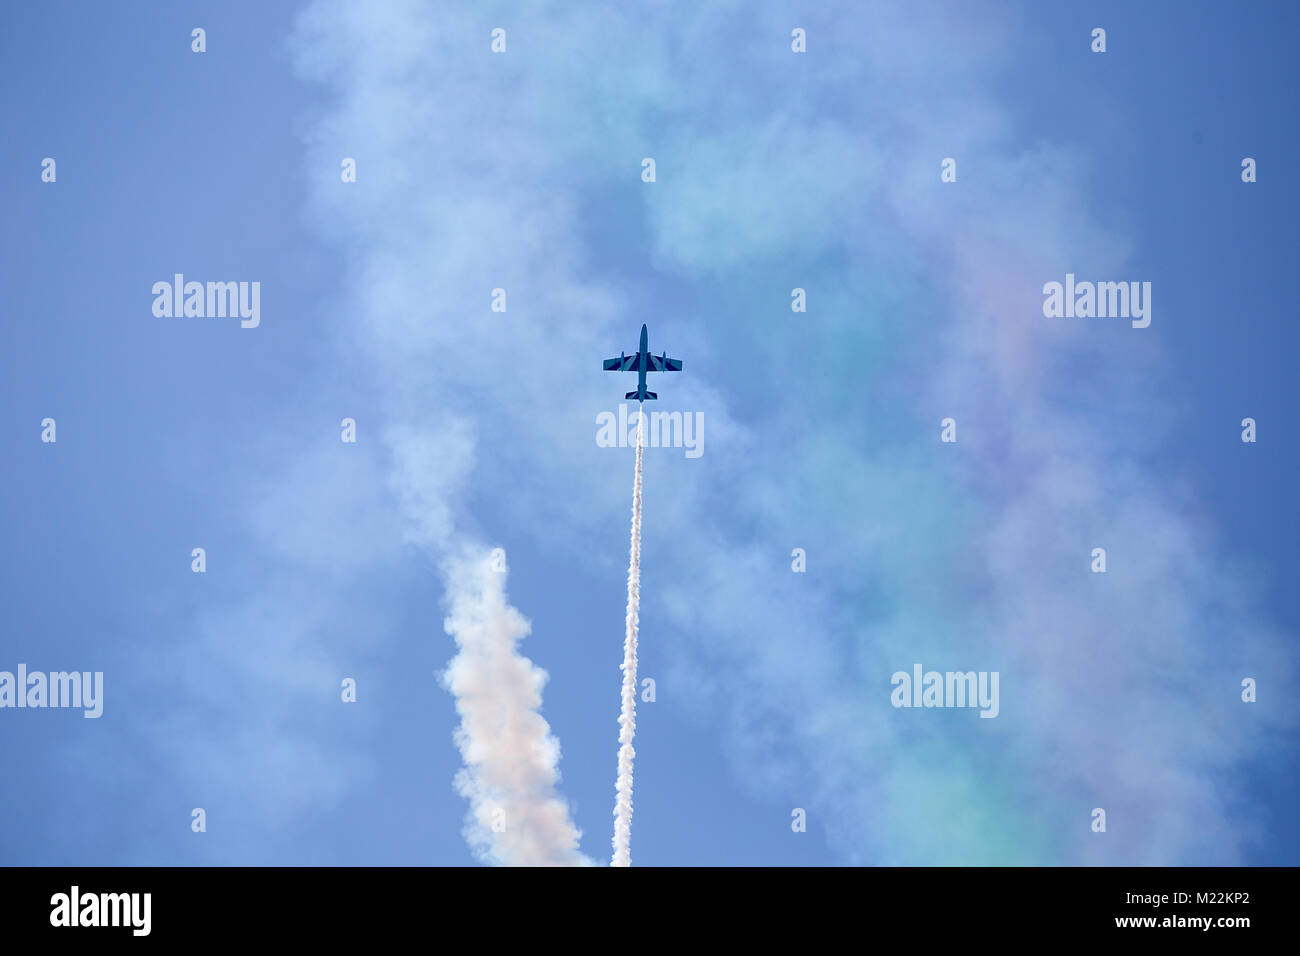 Flight of reactive plane with lot of white smoke - airshow exhibition of solo pilot Italian acrobatic aircraft team - Stock Image